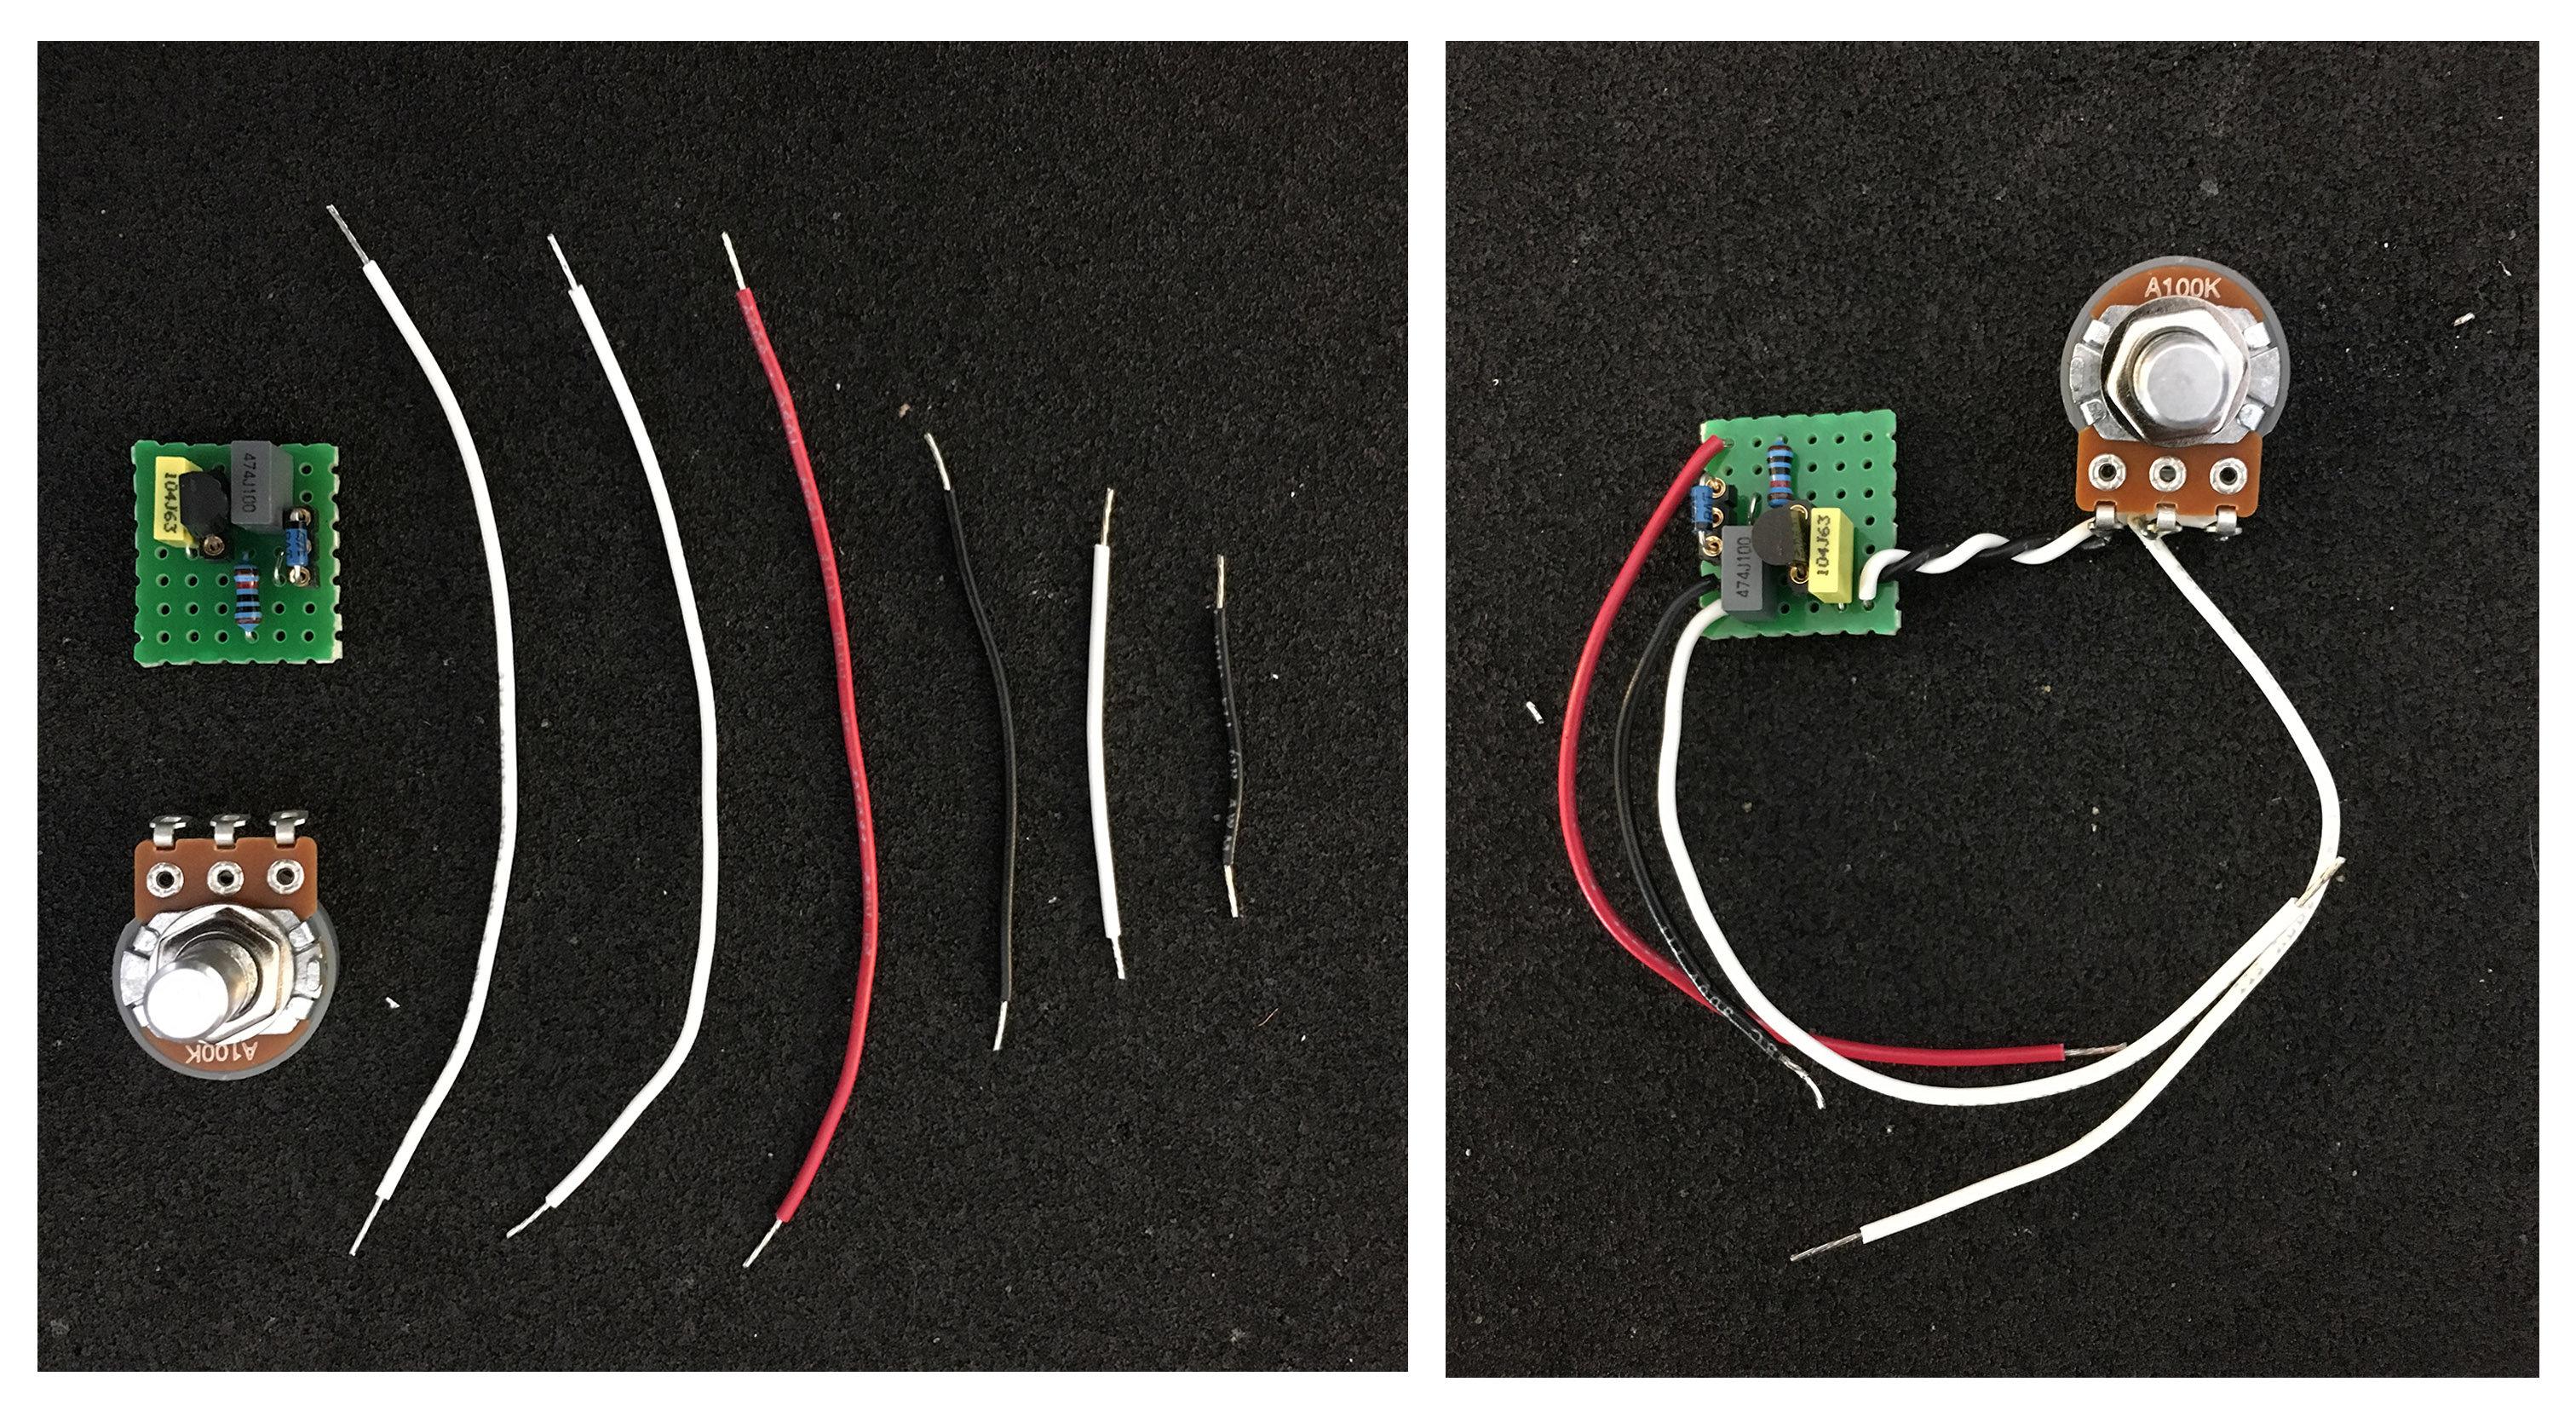 Your First Diy Pedal Project Were Building A Bazz Fuss Tone Report Led Wiring Diagram Double Check The Order Of Wires And Make Sure They Lead To Right Lugs On Pot Leave Other Soldered Nothing Including Wire From